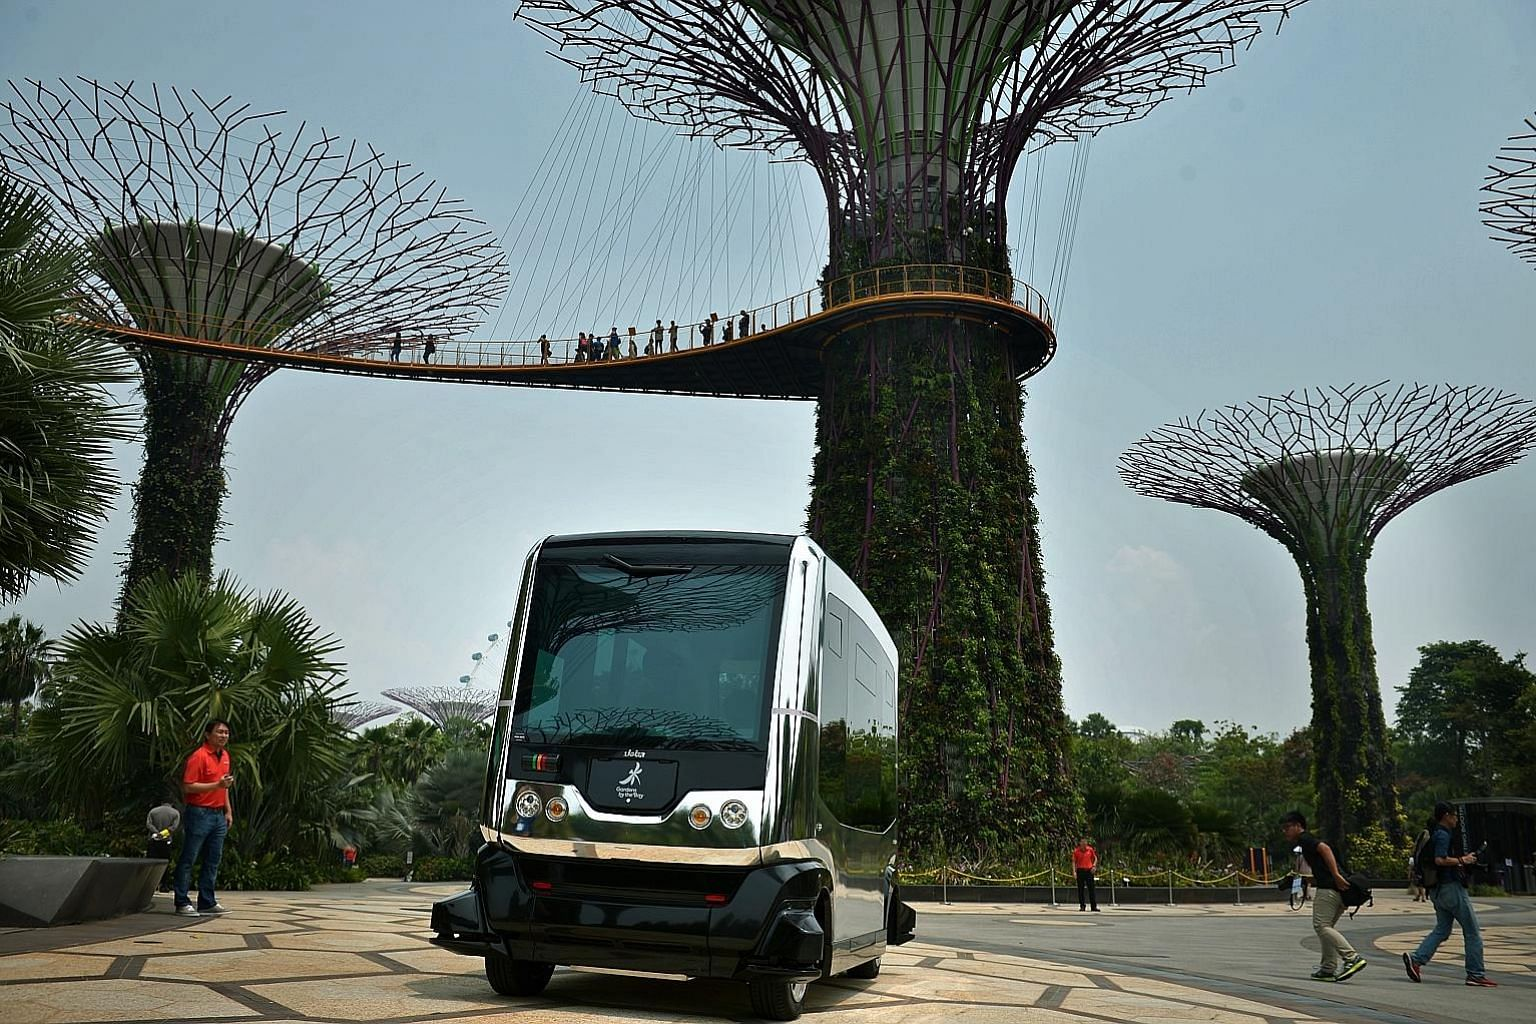 A demonstration of the Auto Rider driverless vehicle at Gardens by the Bay during an autonomous vehicle (AV) trial in 2015. The development of AV deployment is speeding up in Singapore, with trials already in progress on dedicated public roads, inclu